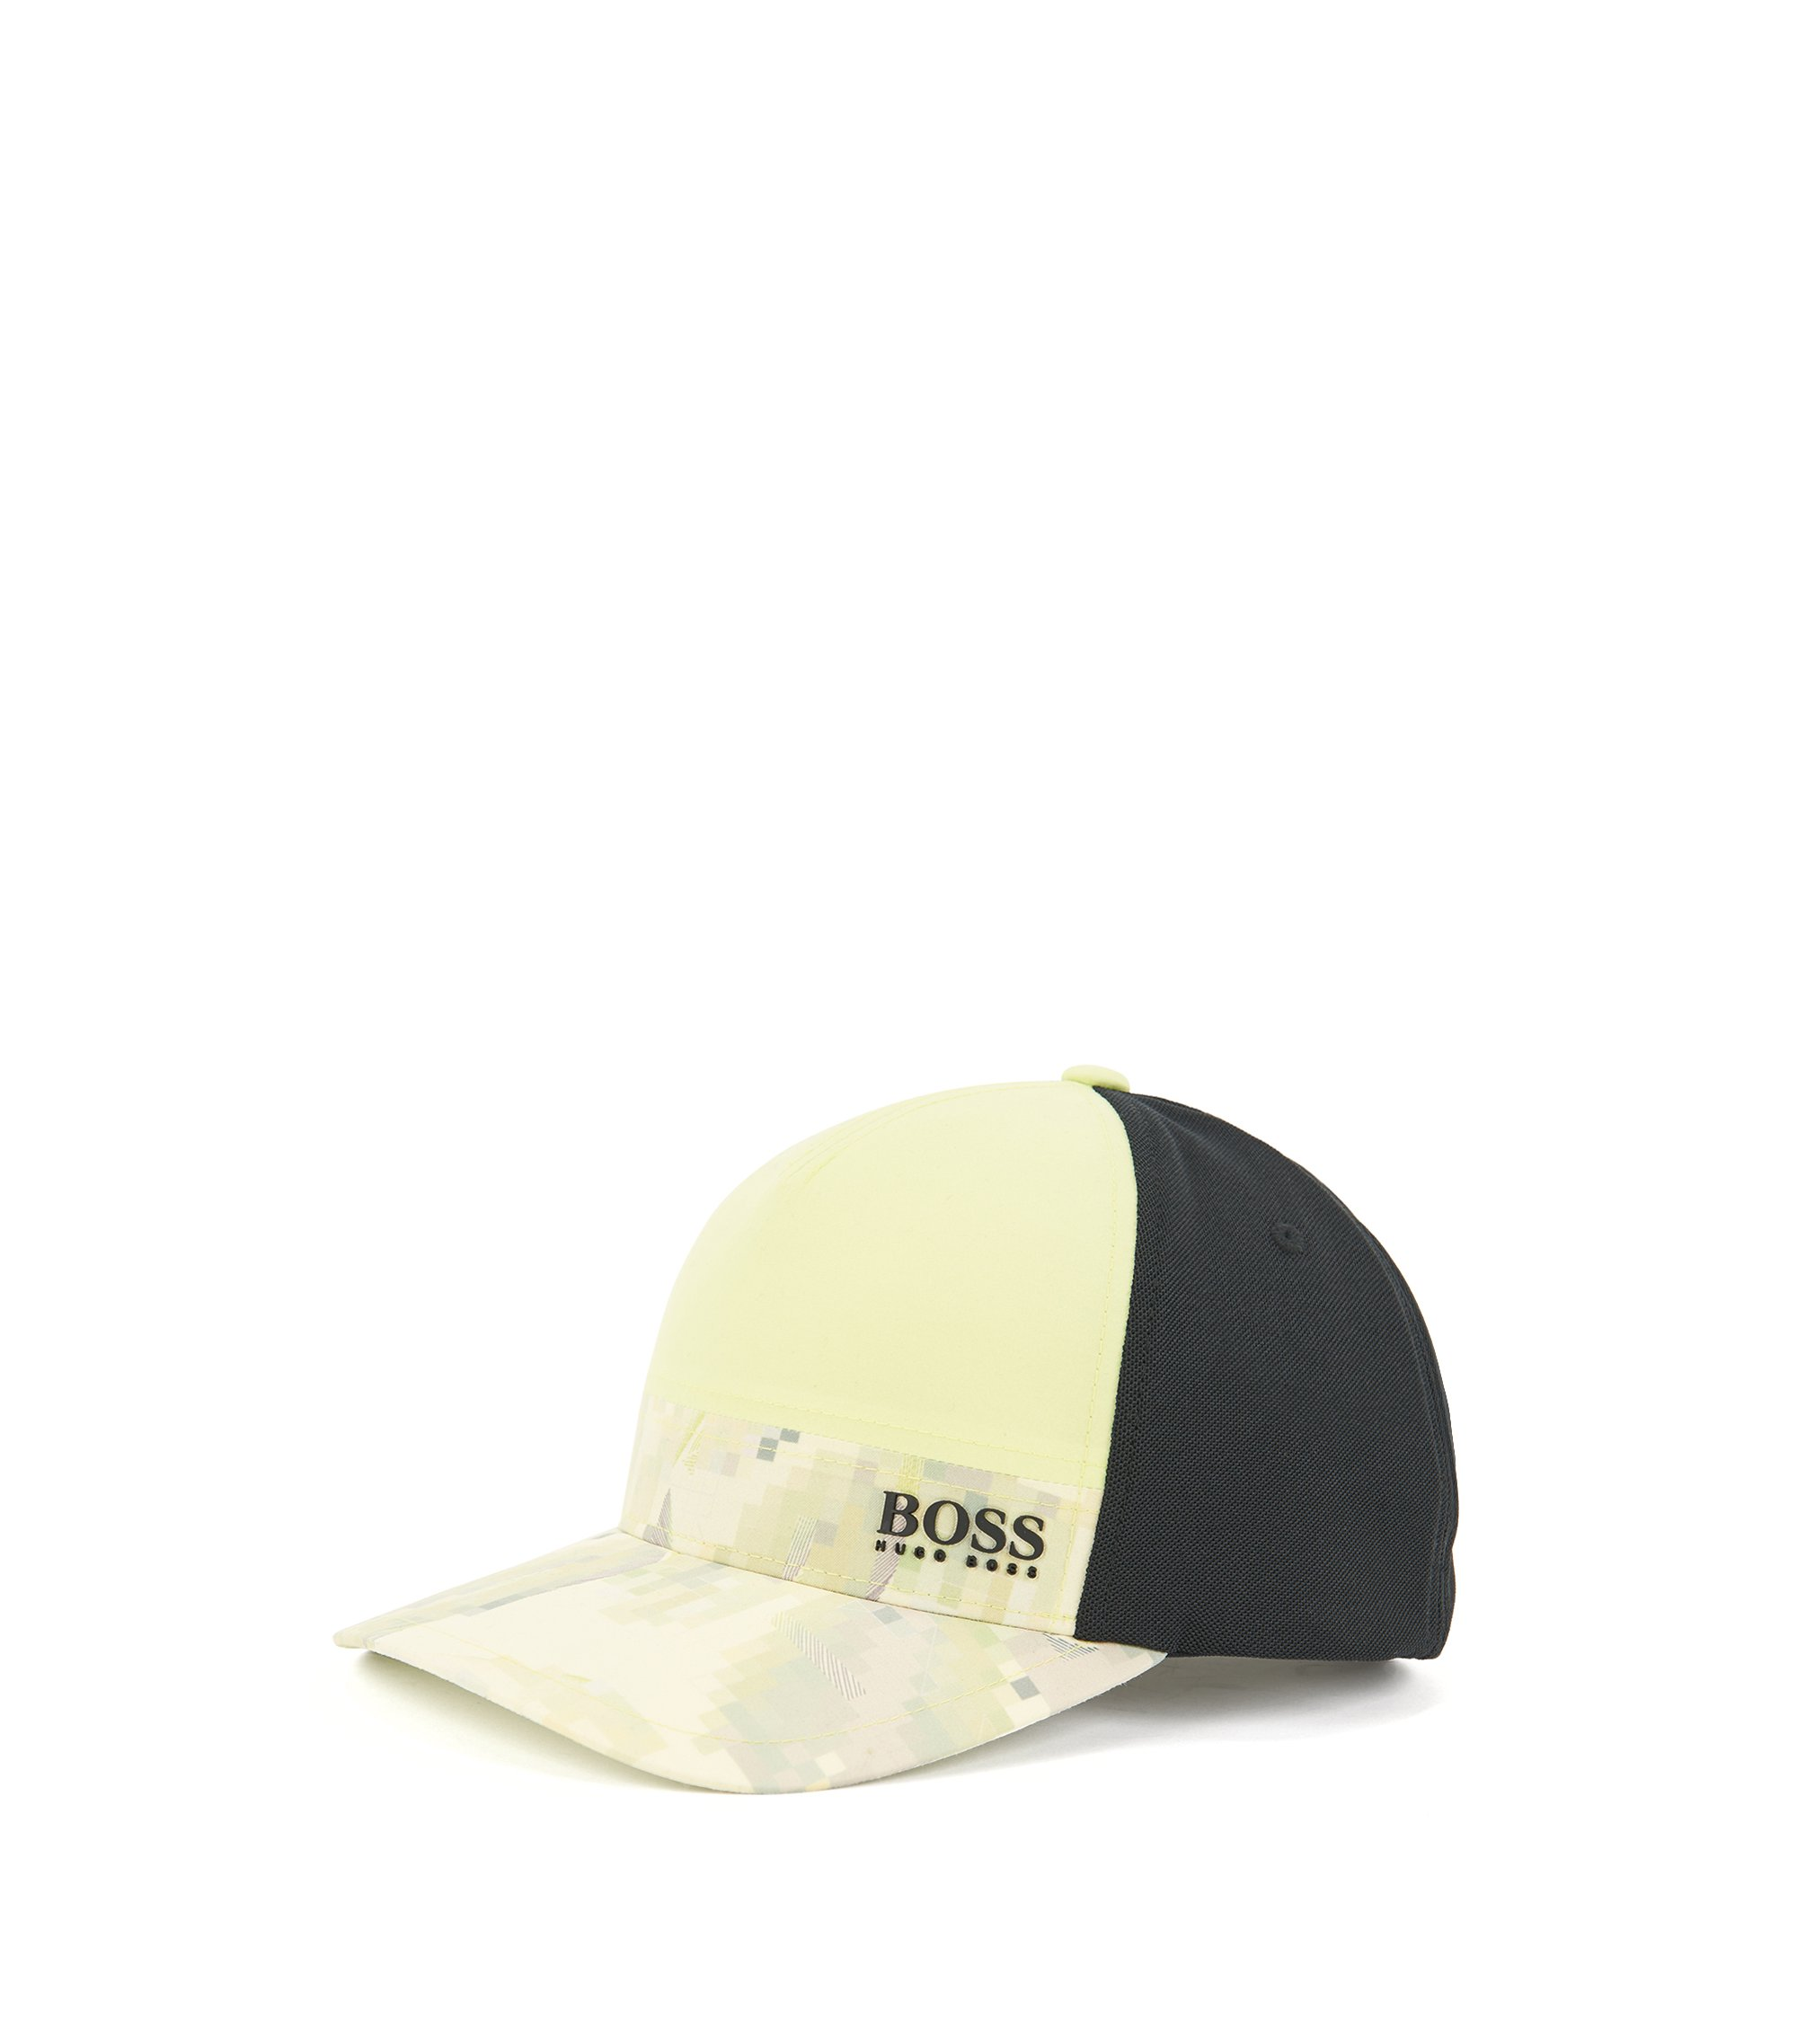 Digi-Camo Colorblock Baseball Cap | Printcap, Light Green